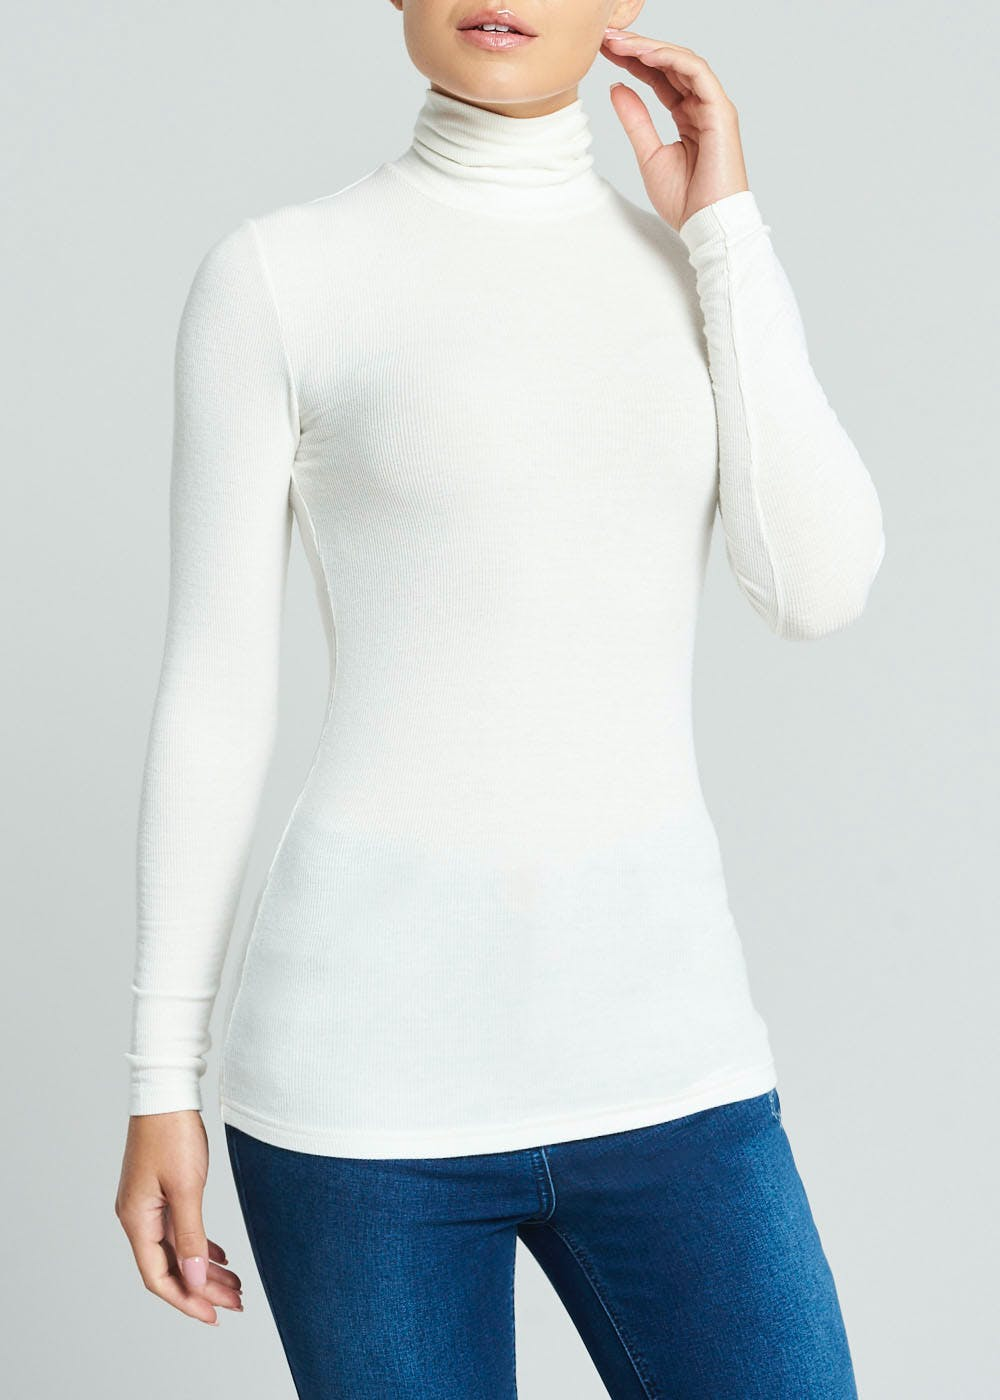 Tapestry ladies roll neck top